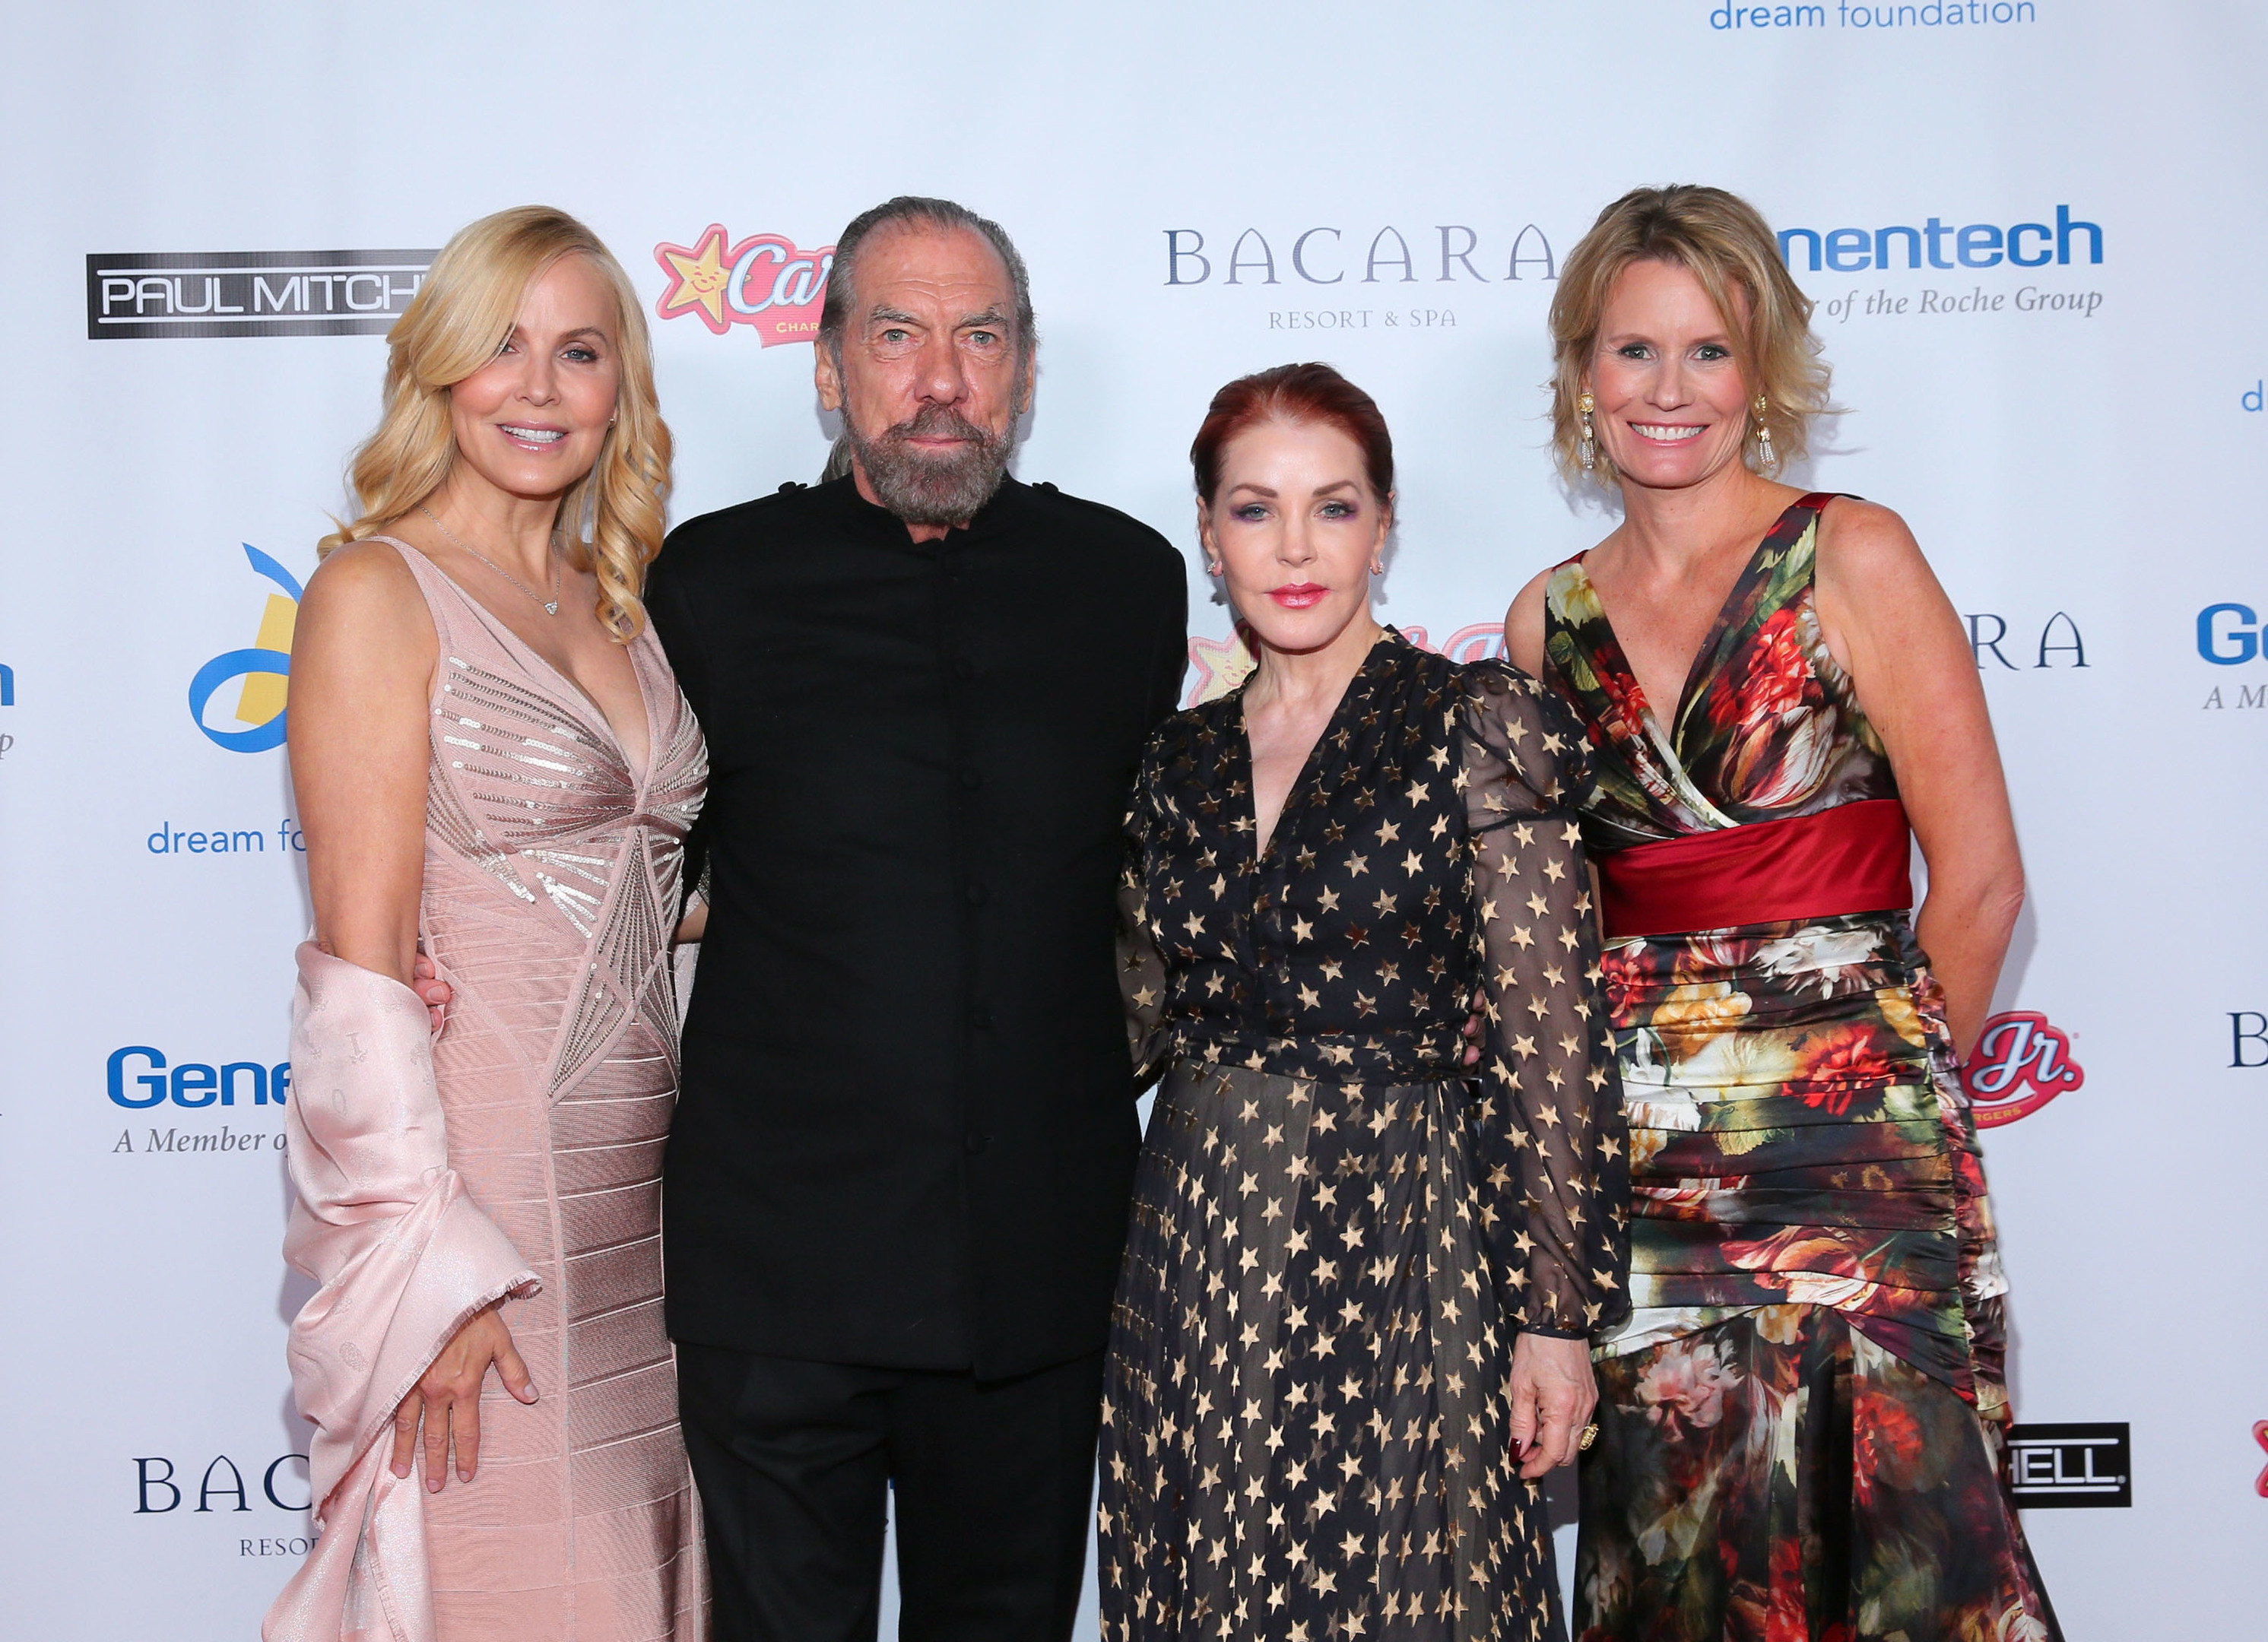 (L-R) Eloise DeJoria, John Paul DeJoria, Priscilla Presley and Kisa Heyer attend the Dream Foundation's 13th annual celebration of dreams gala held at the Bacara Resort and Spa in 2014 (Photo by Mark Davis/Getty Images)